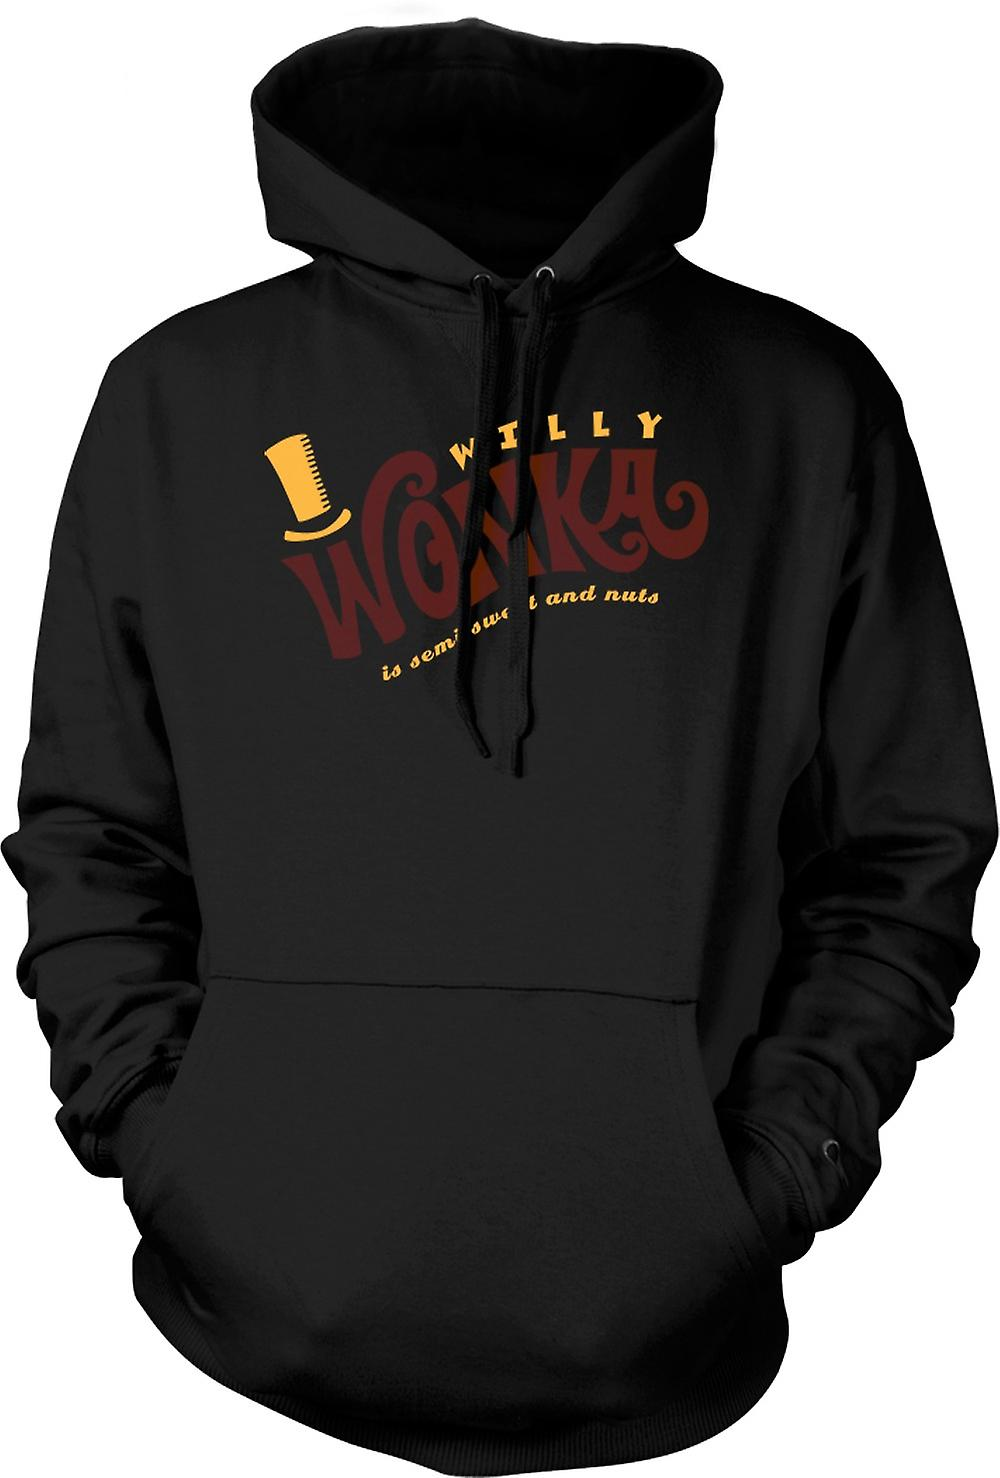 Mens Hoodie - Willy Wonka And Chocolate Factory - BW